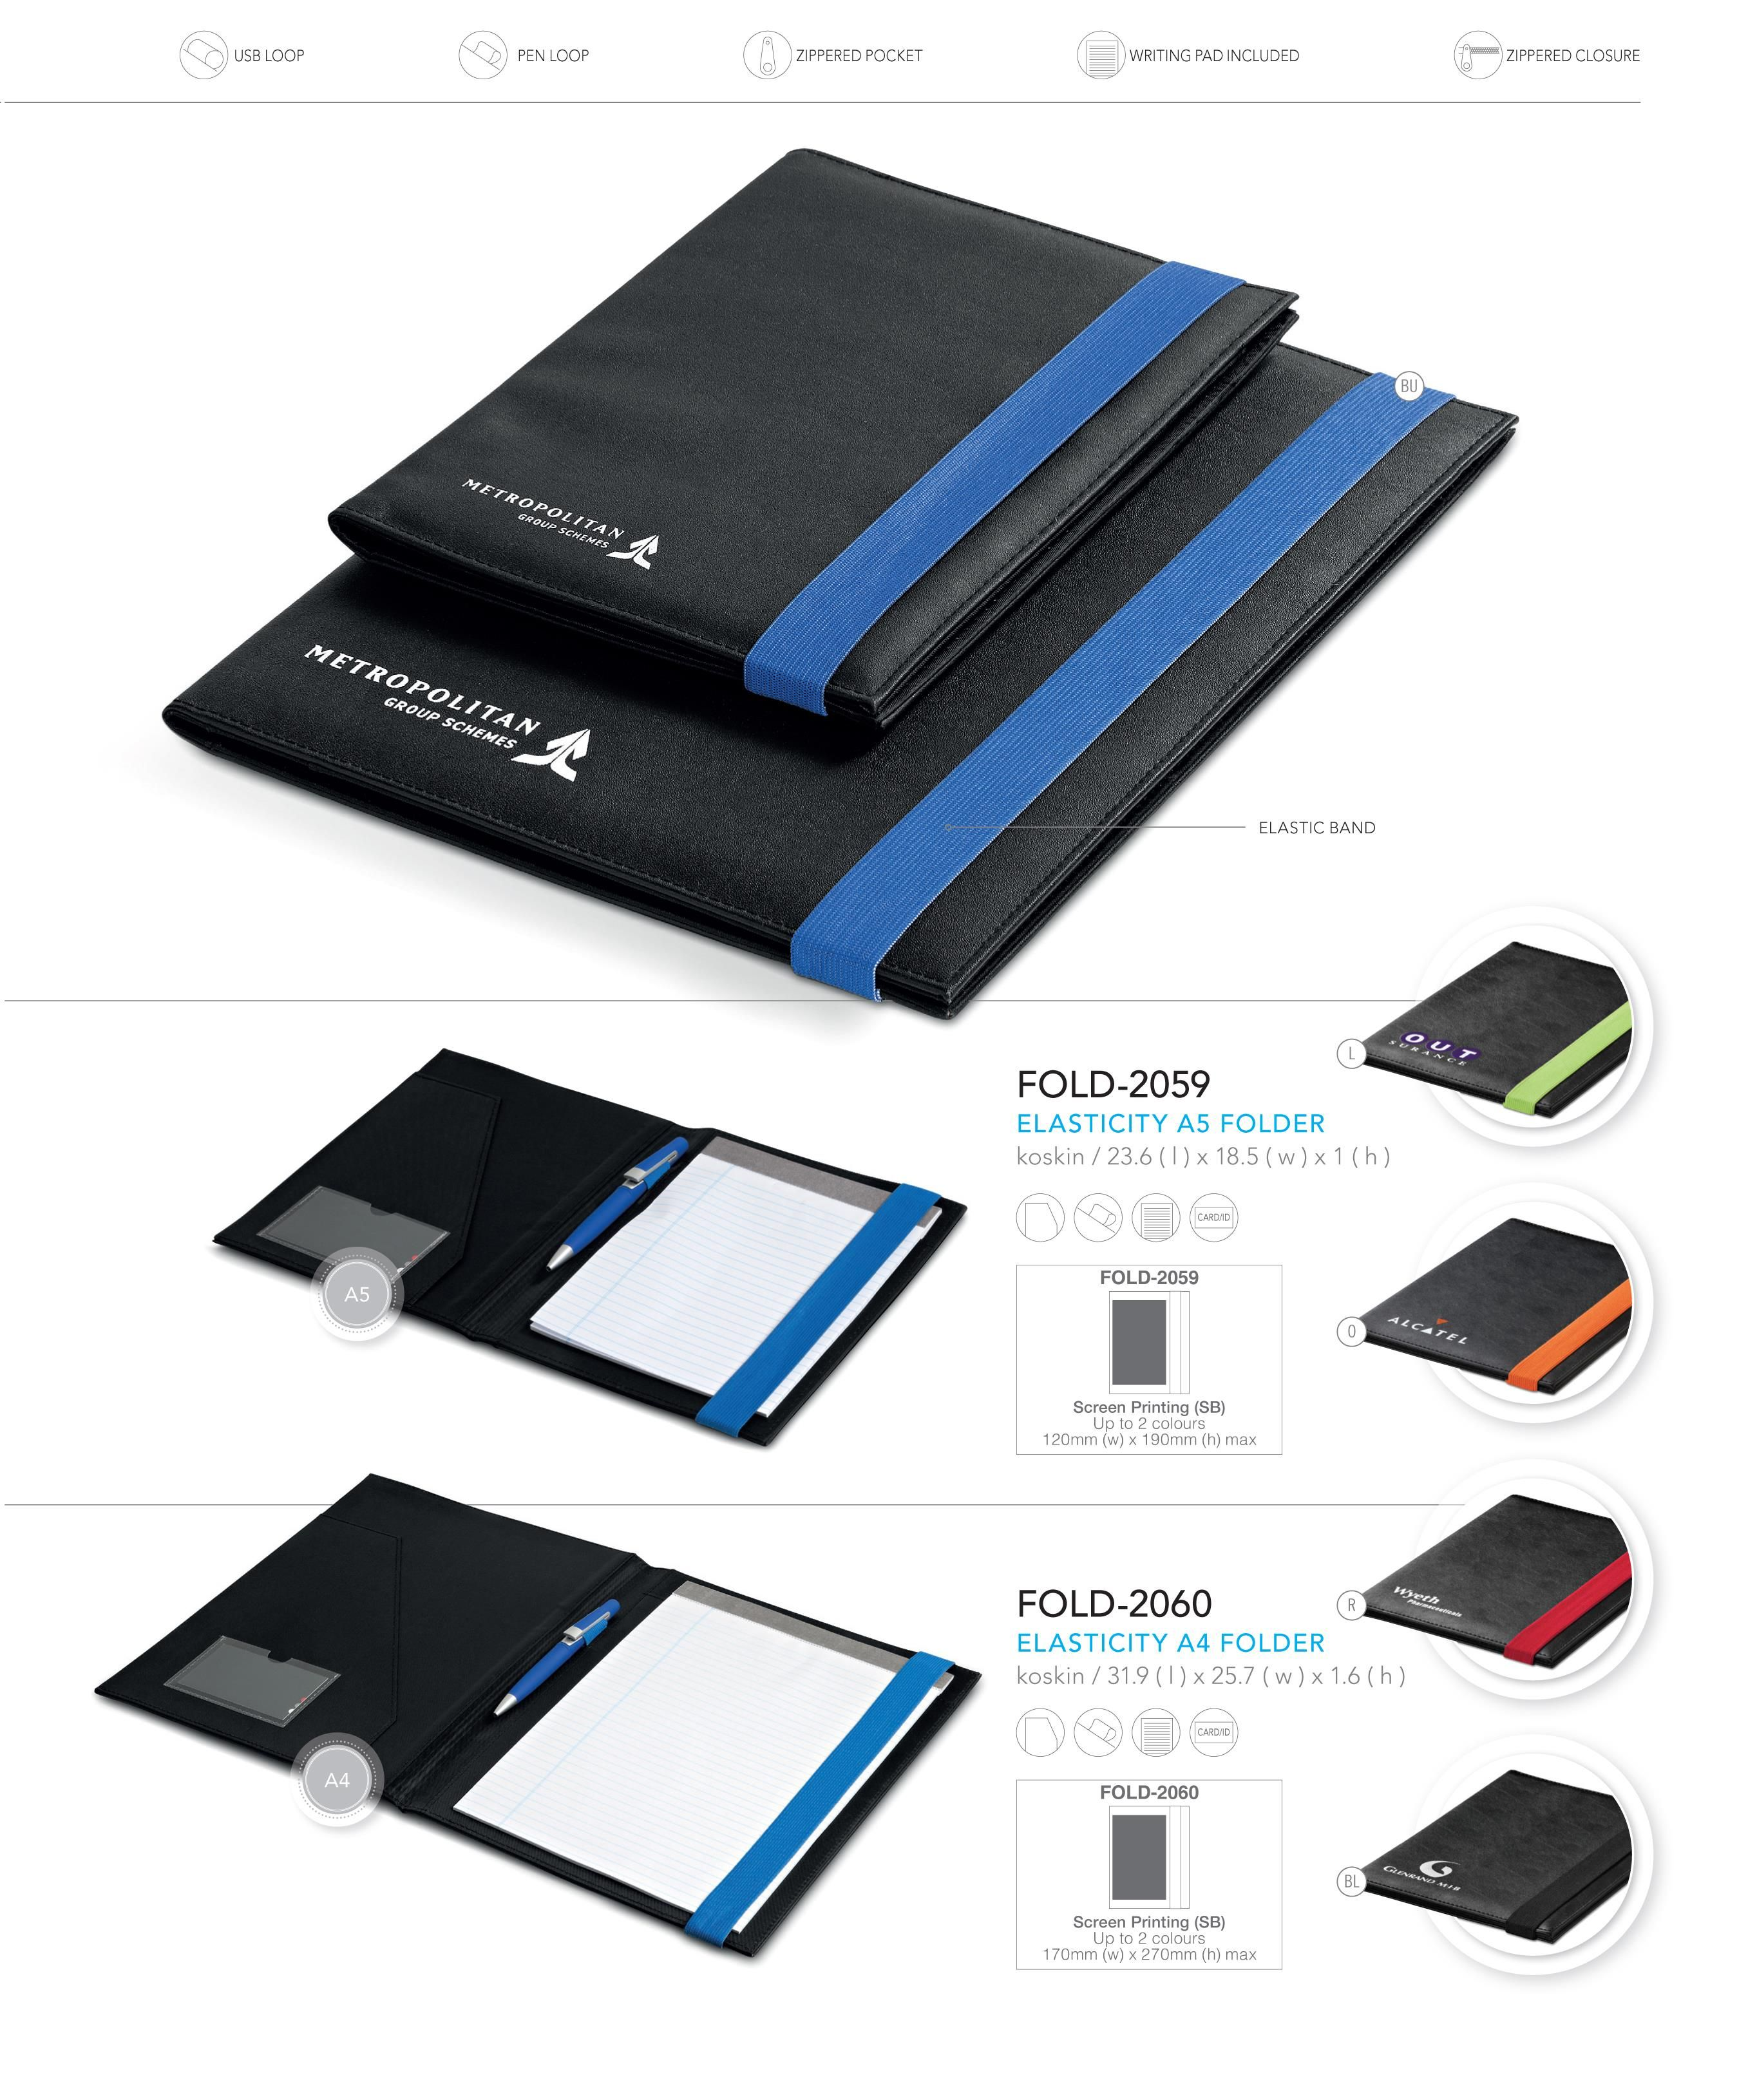 Elasticity A5 Folder With Images Corporate Gifts Gift